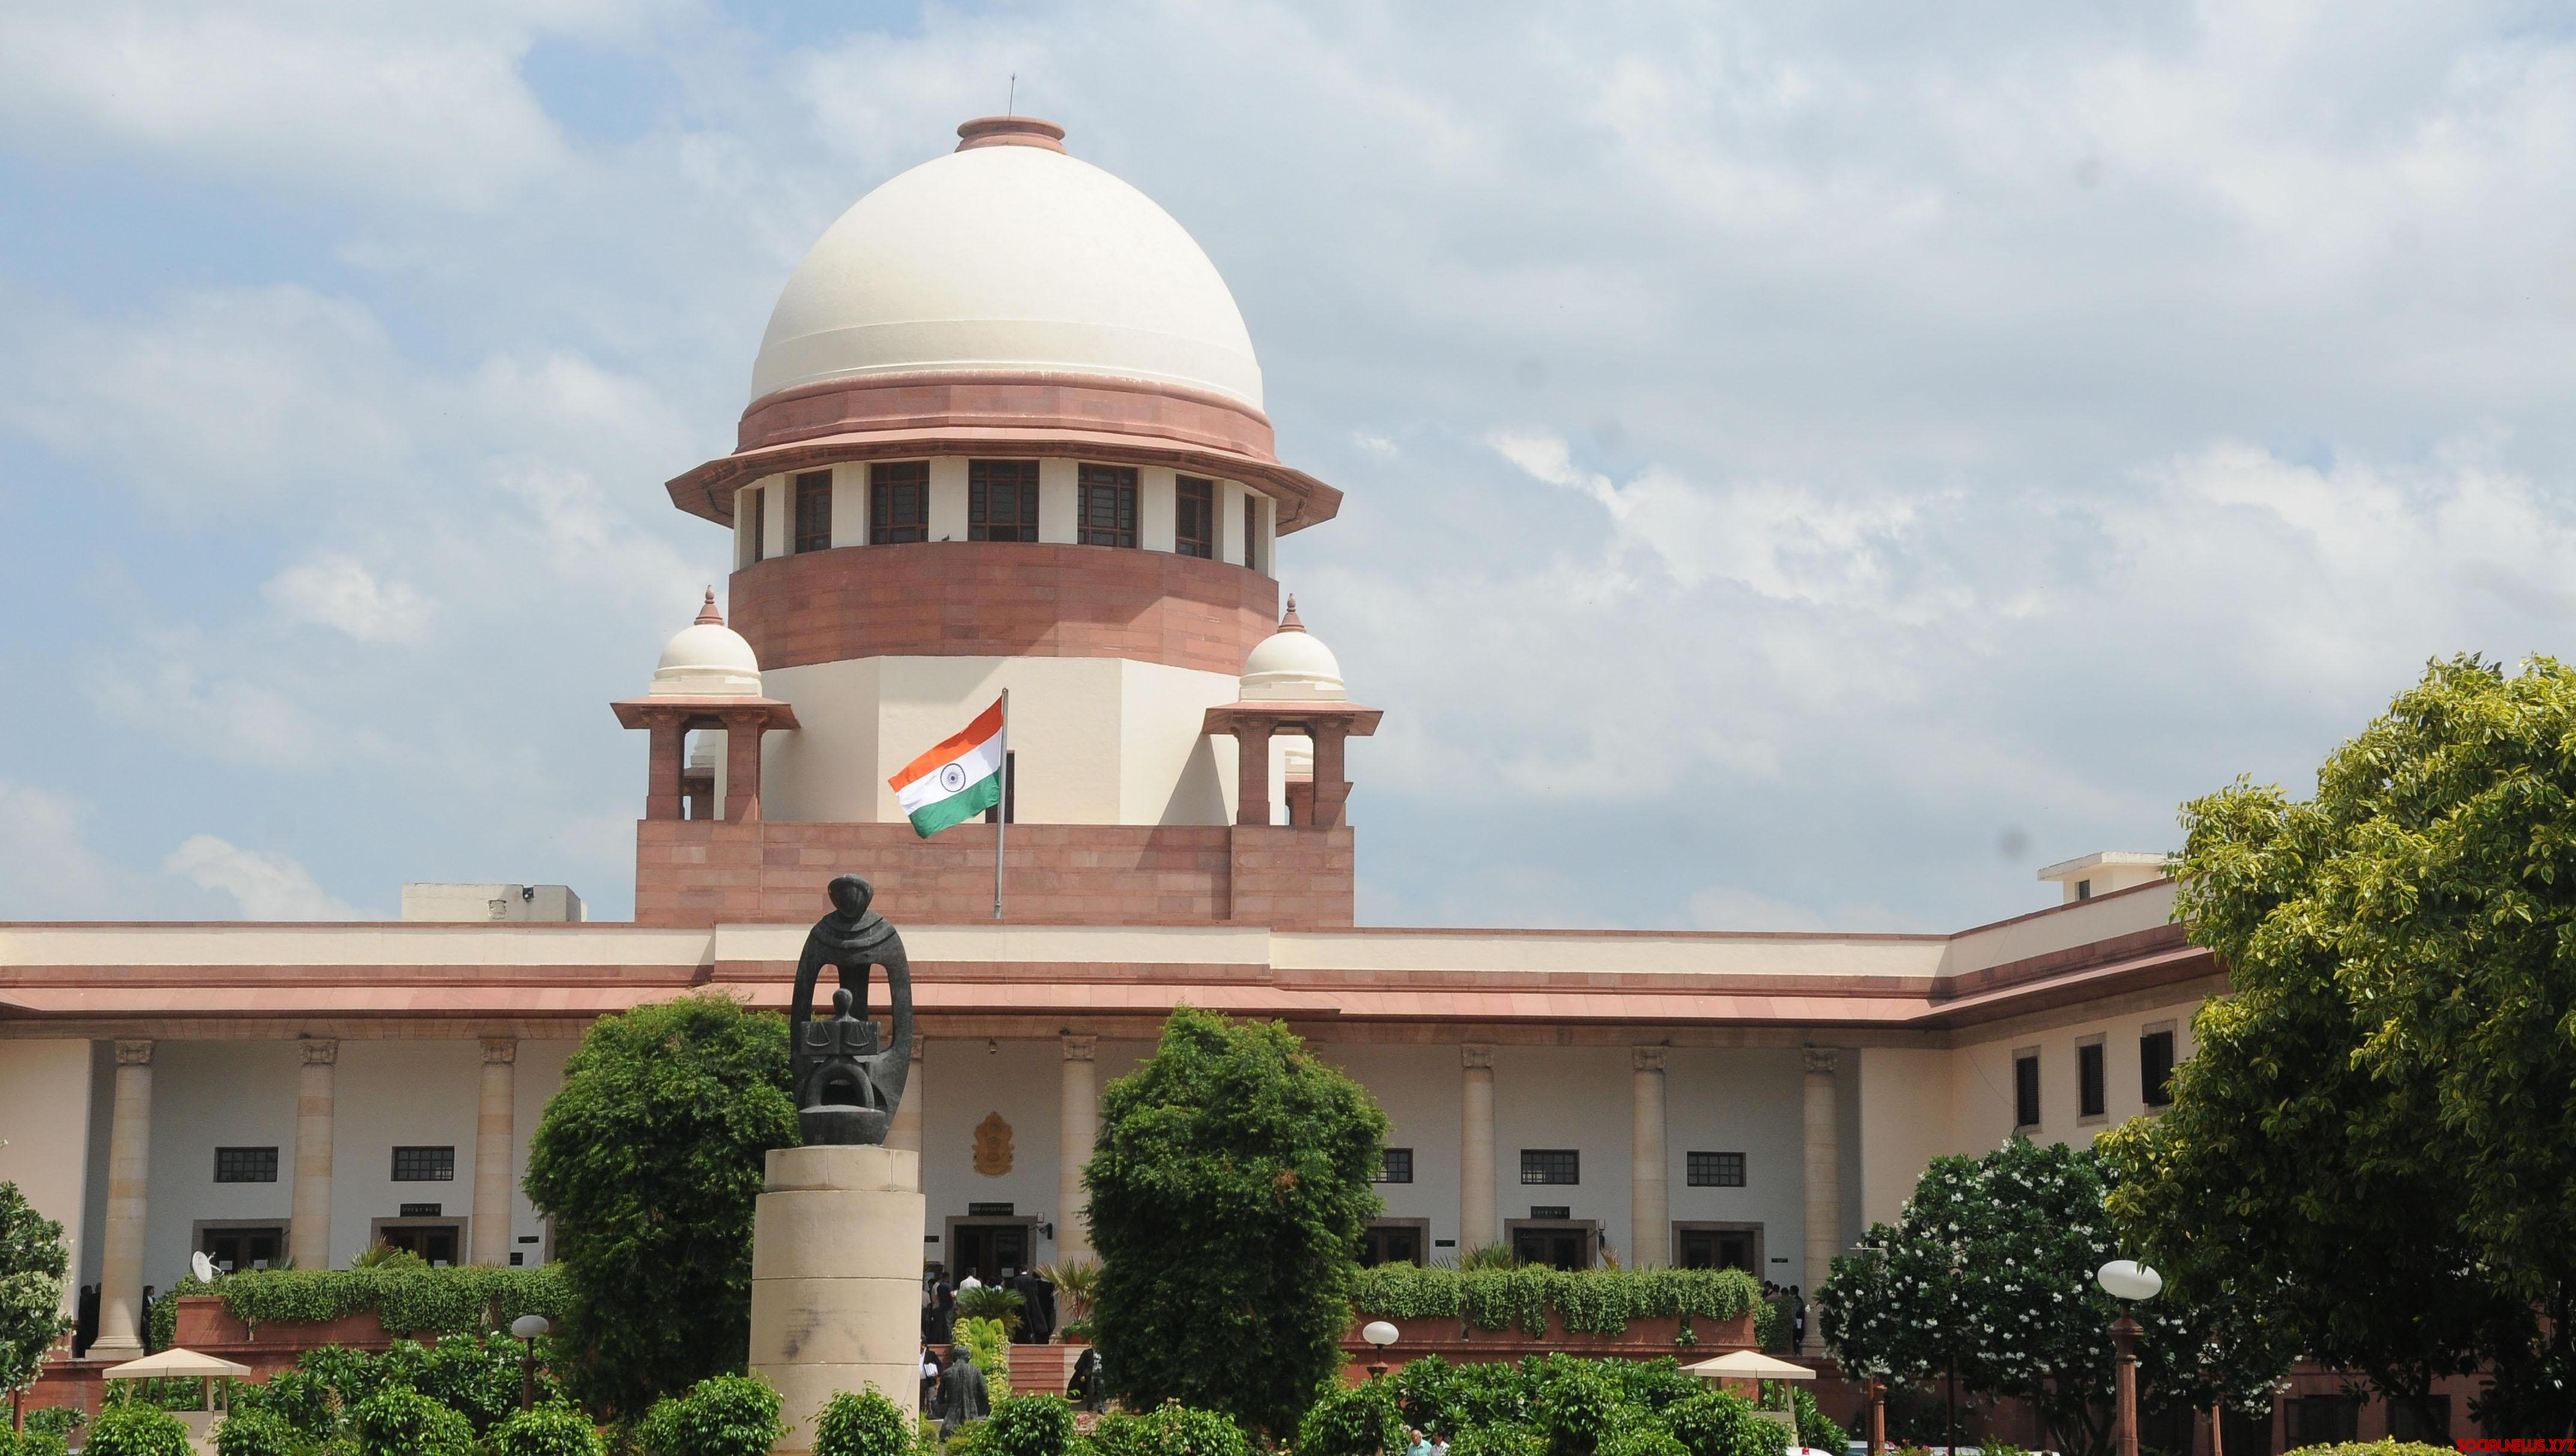 SC summons officials of Delh civic bodies on sealing issue